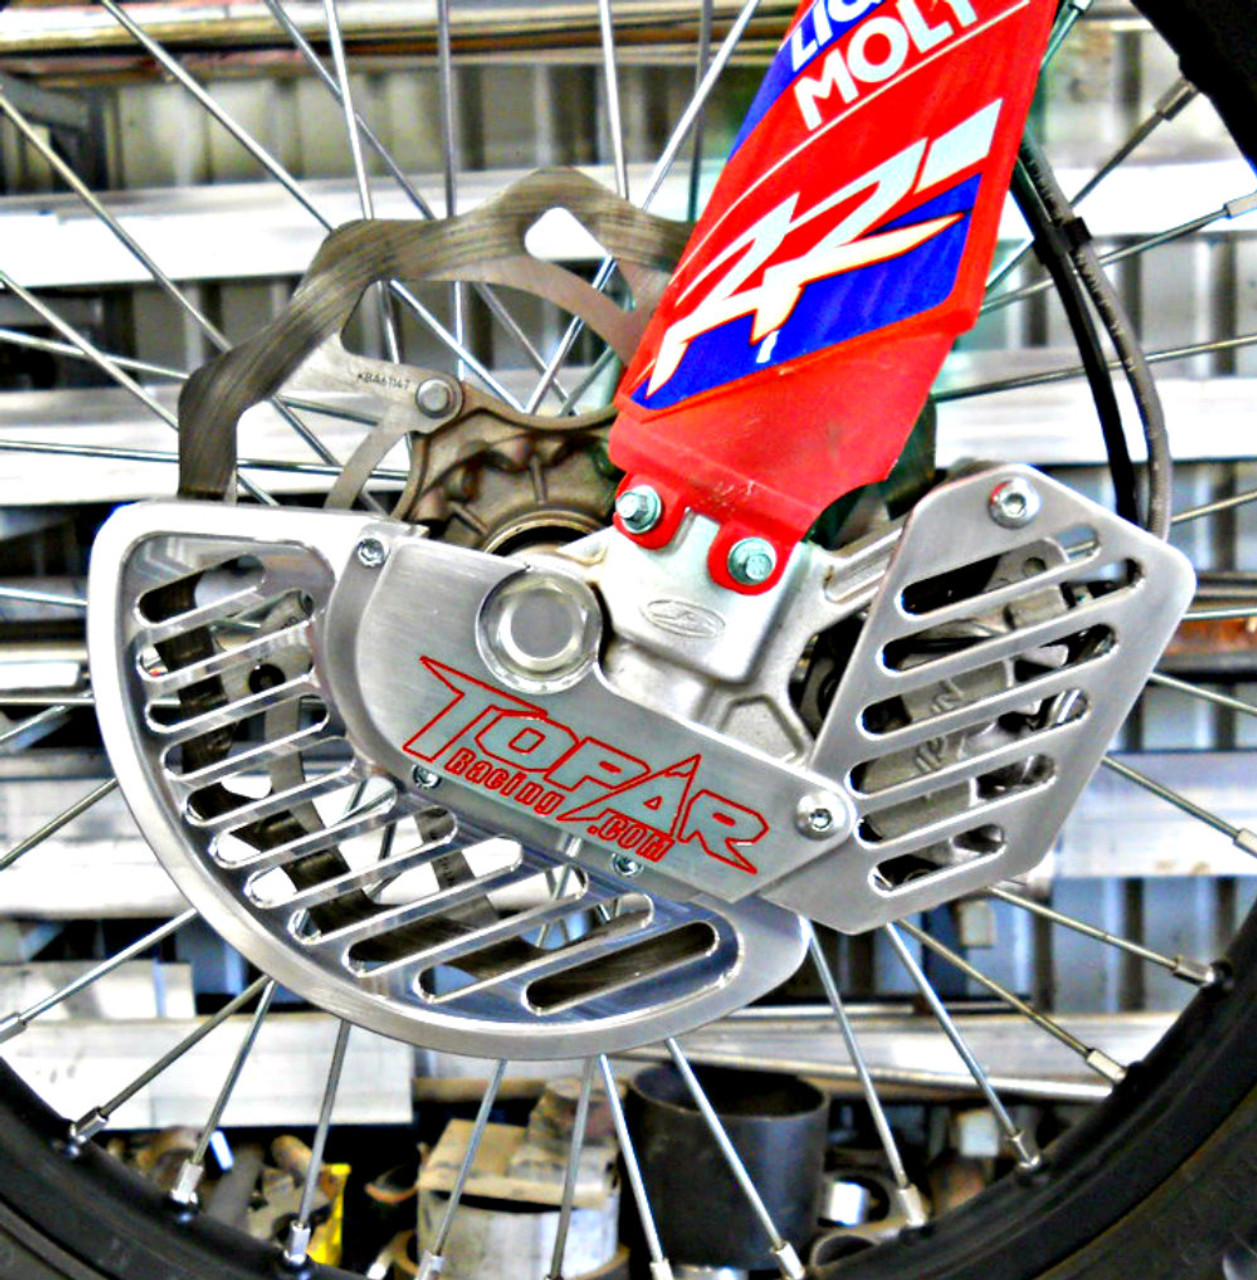 Topar Racing Front Brake Rotor Disc Guard for 2018-2020 BETA - All with KYB or ZF FORKS ONLY  (SHOWN ON BIKE with ALUMINUM FIN and OPTIONAL CALIPER GUARD).